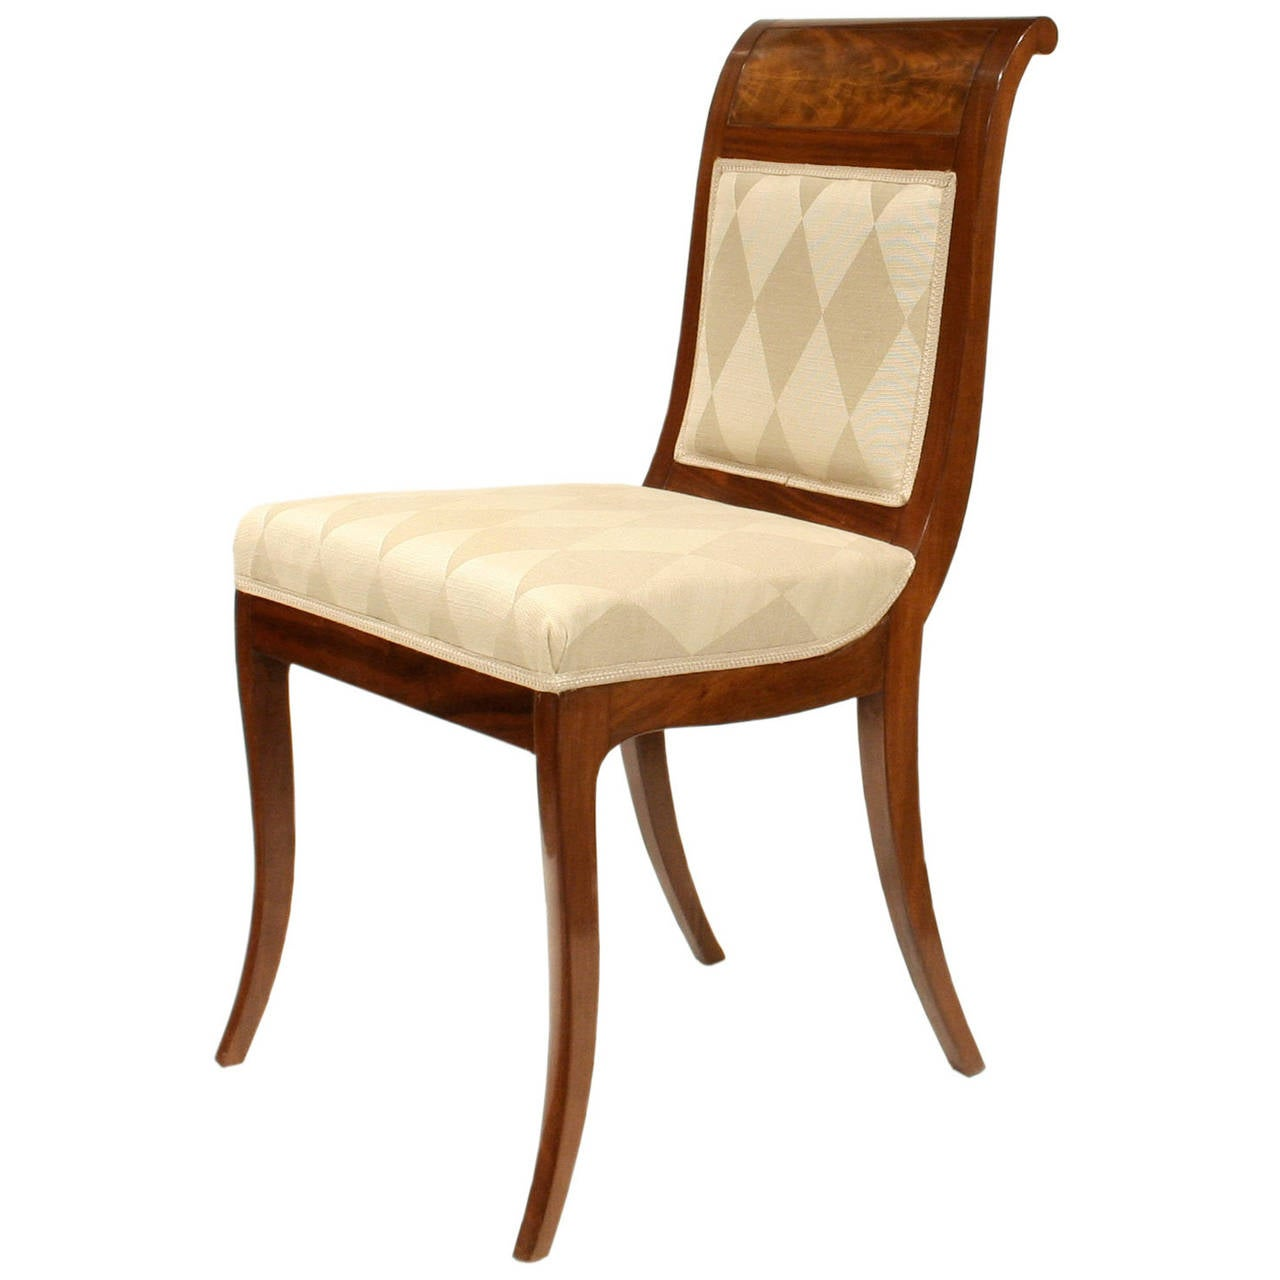 hamburg biedermeier side chair at 1stdibs. Black Bedroom Furniture Sets. Home Design Ideas